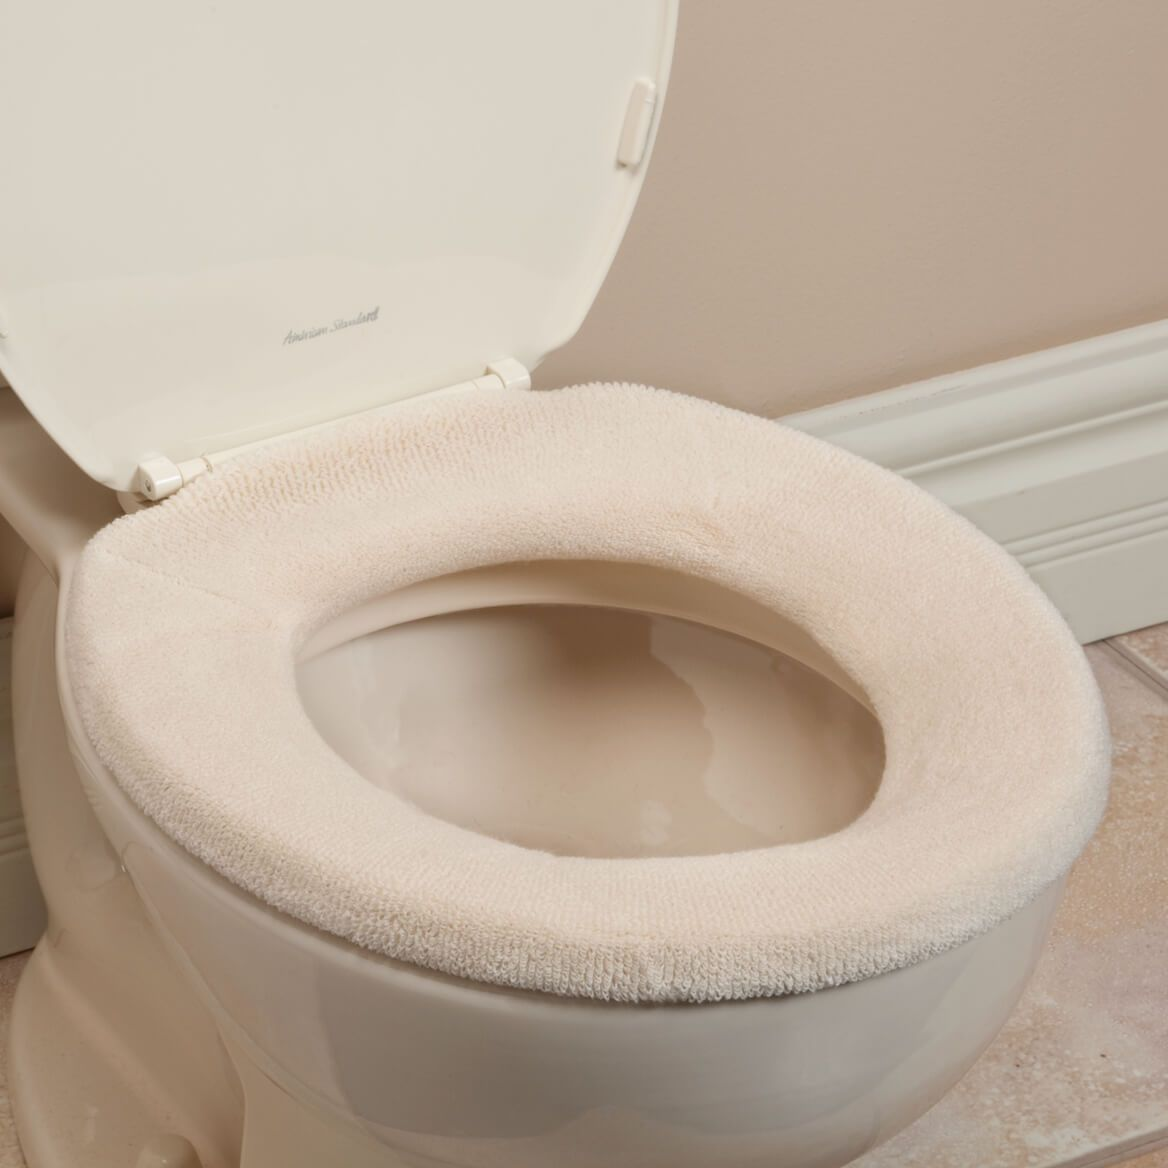 Toilet Seat Cover-303457